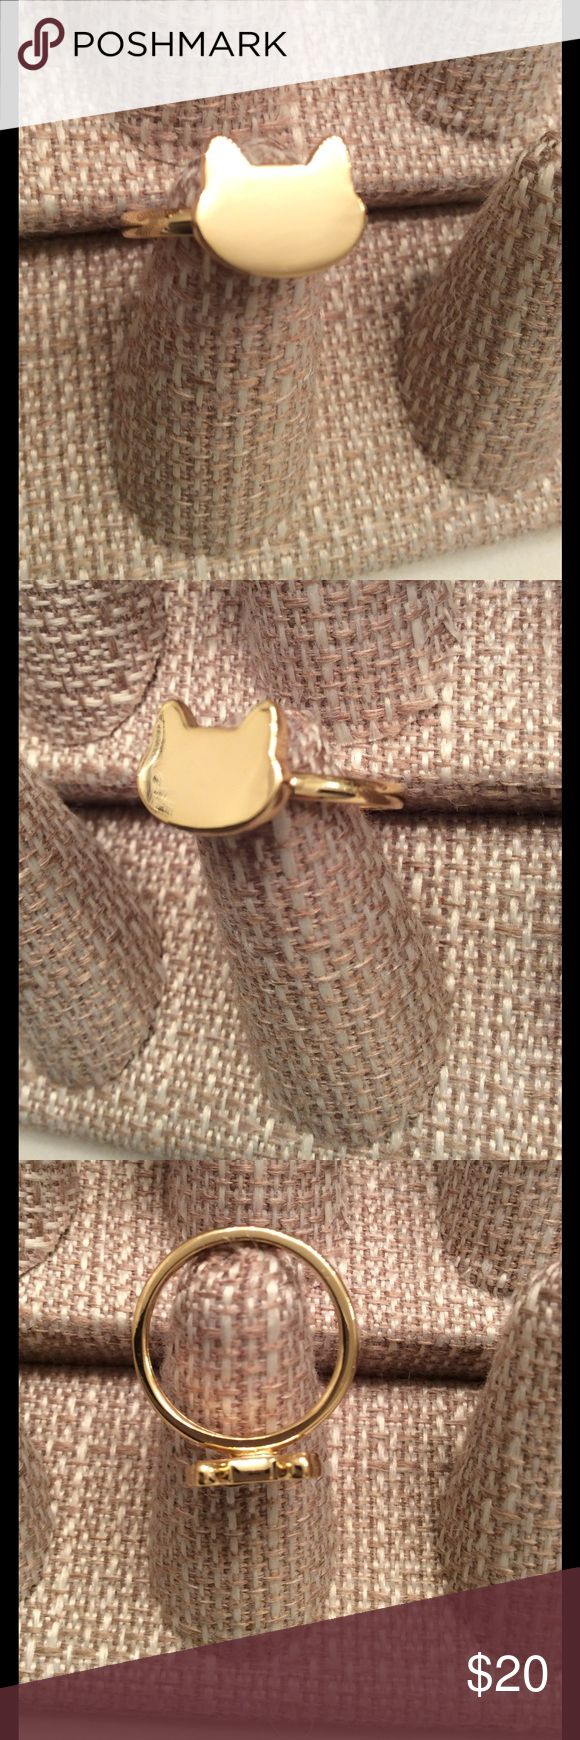 Golden Kitty Kat Ring Golden Kitty Kat Ring 14k Gold Plated, Rings are all New, Just no tag to show. KEVET Jewelry Rings